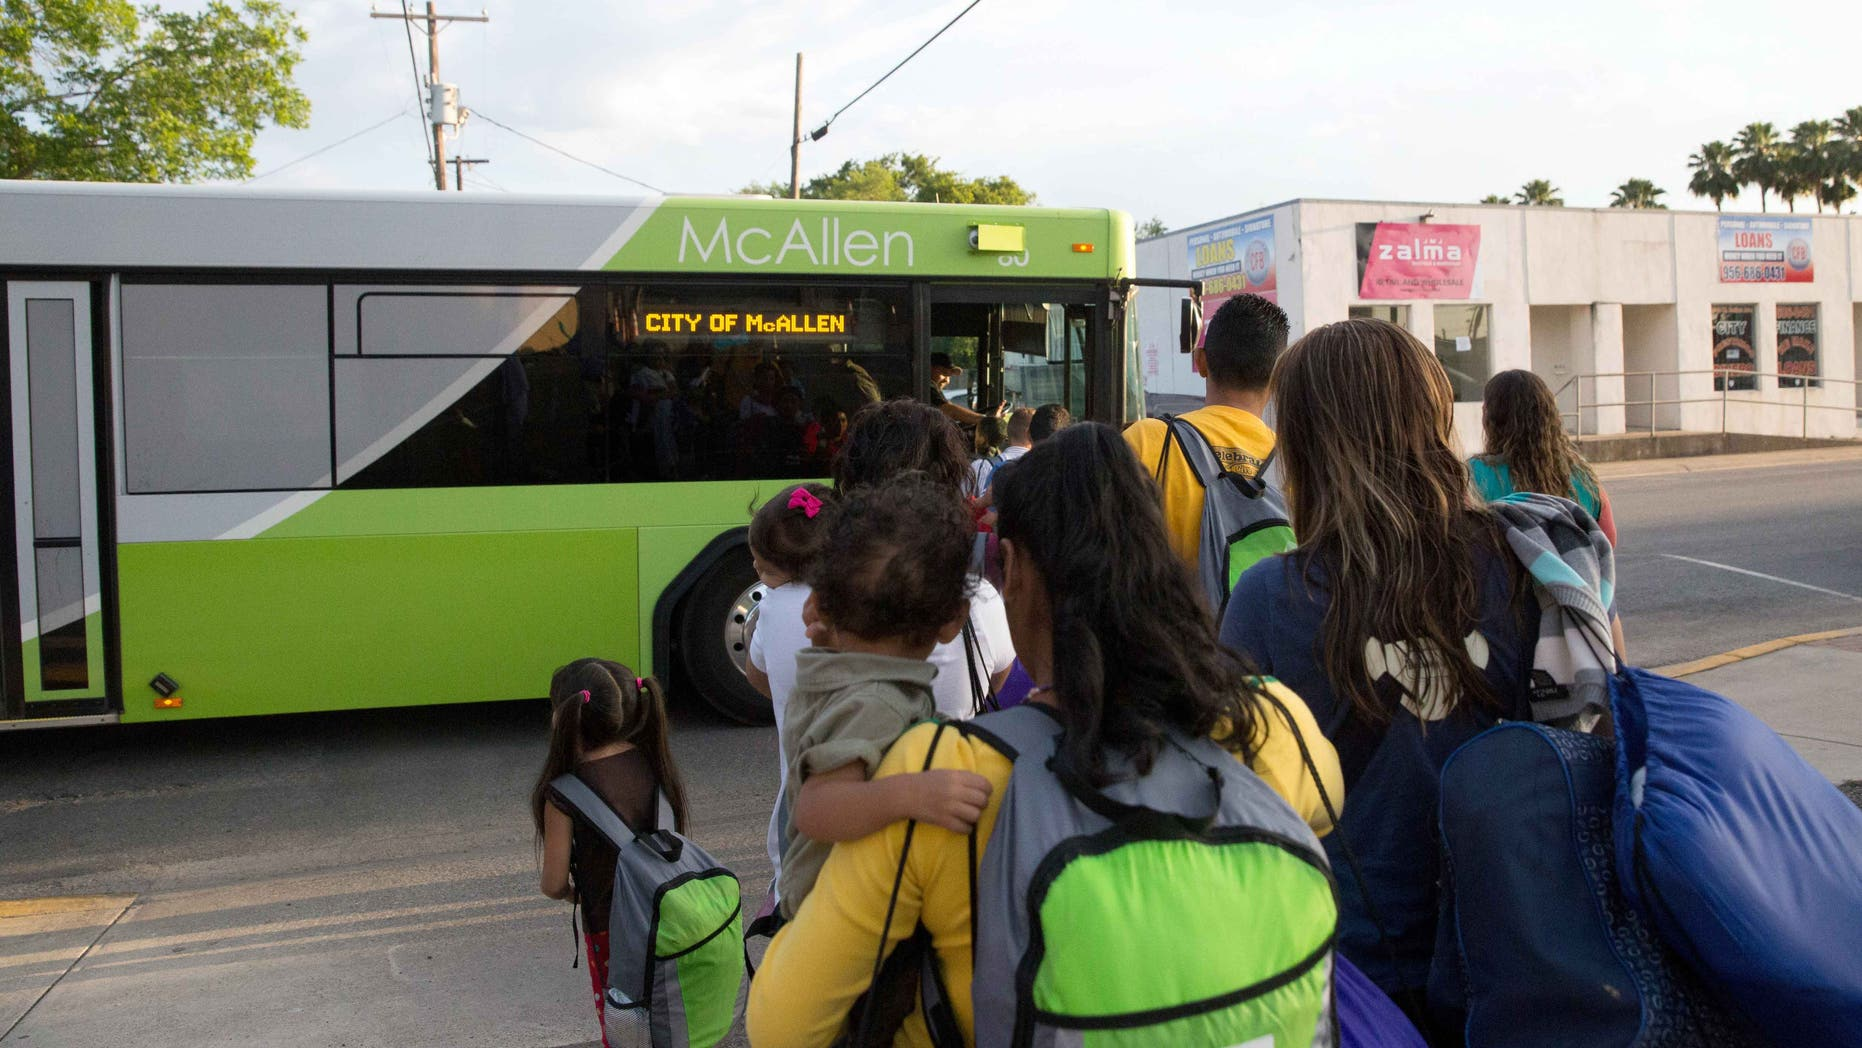 Immigrant families board a bus headed to the downtown bus station in McAllen, Texas on April 30, 2015.